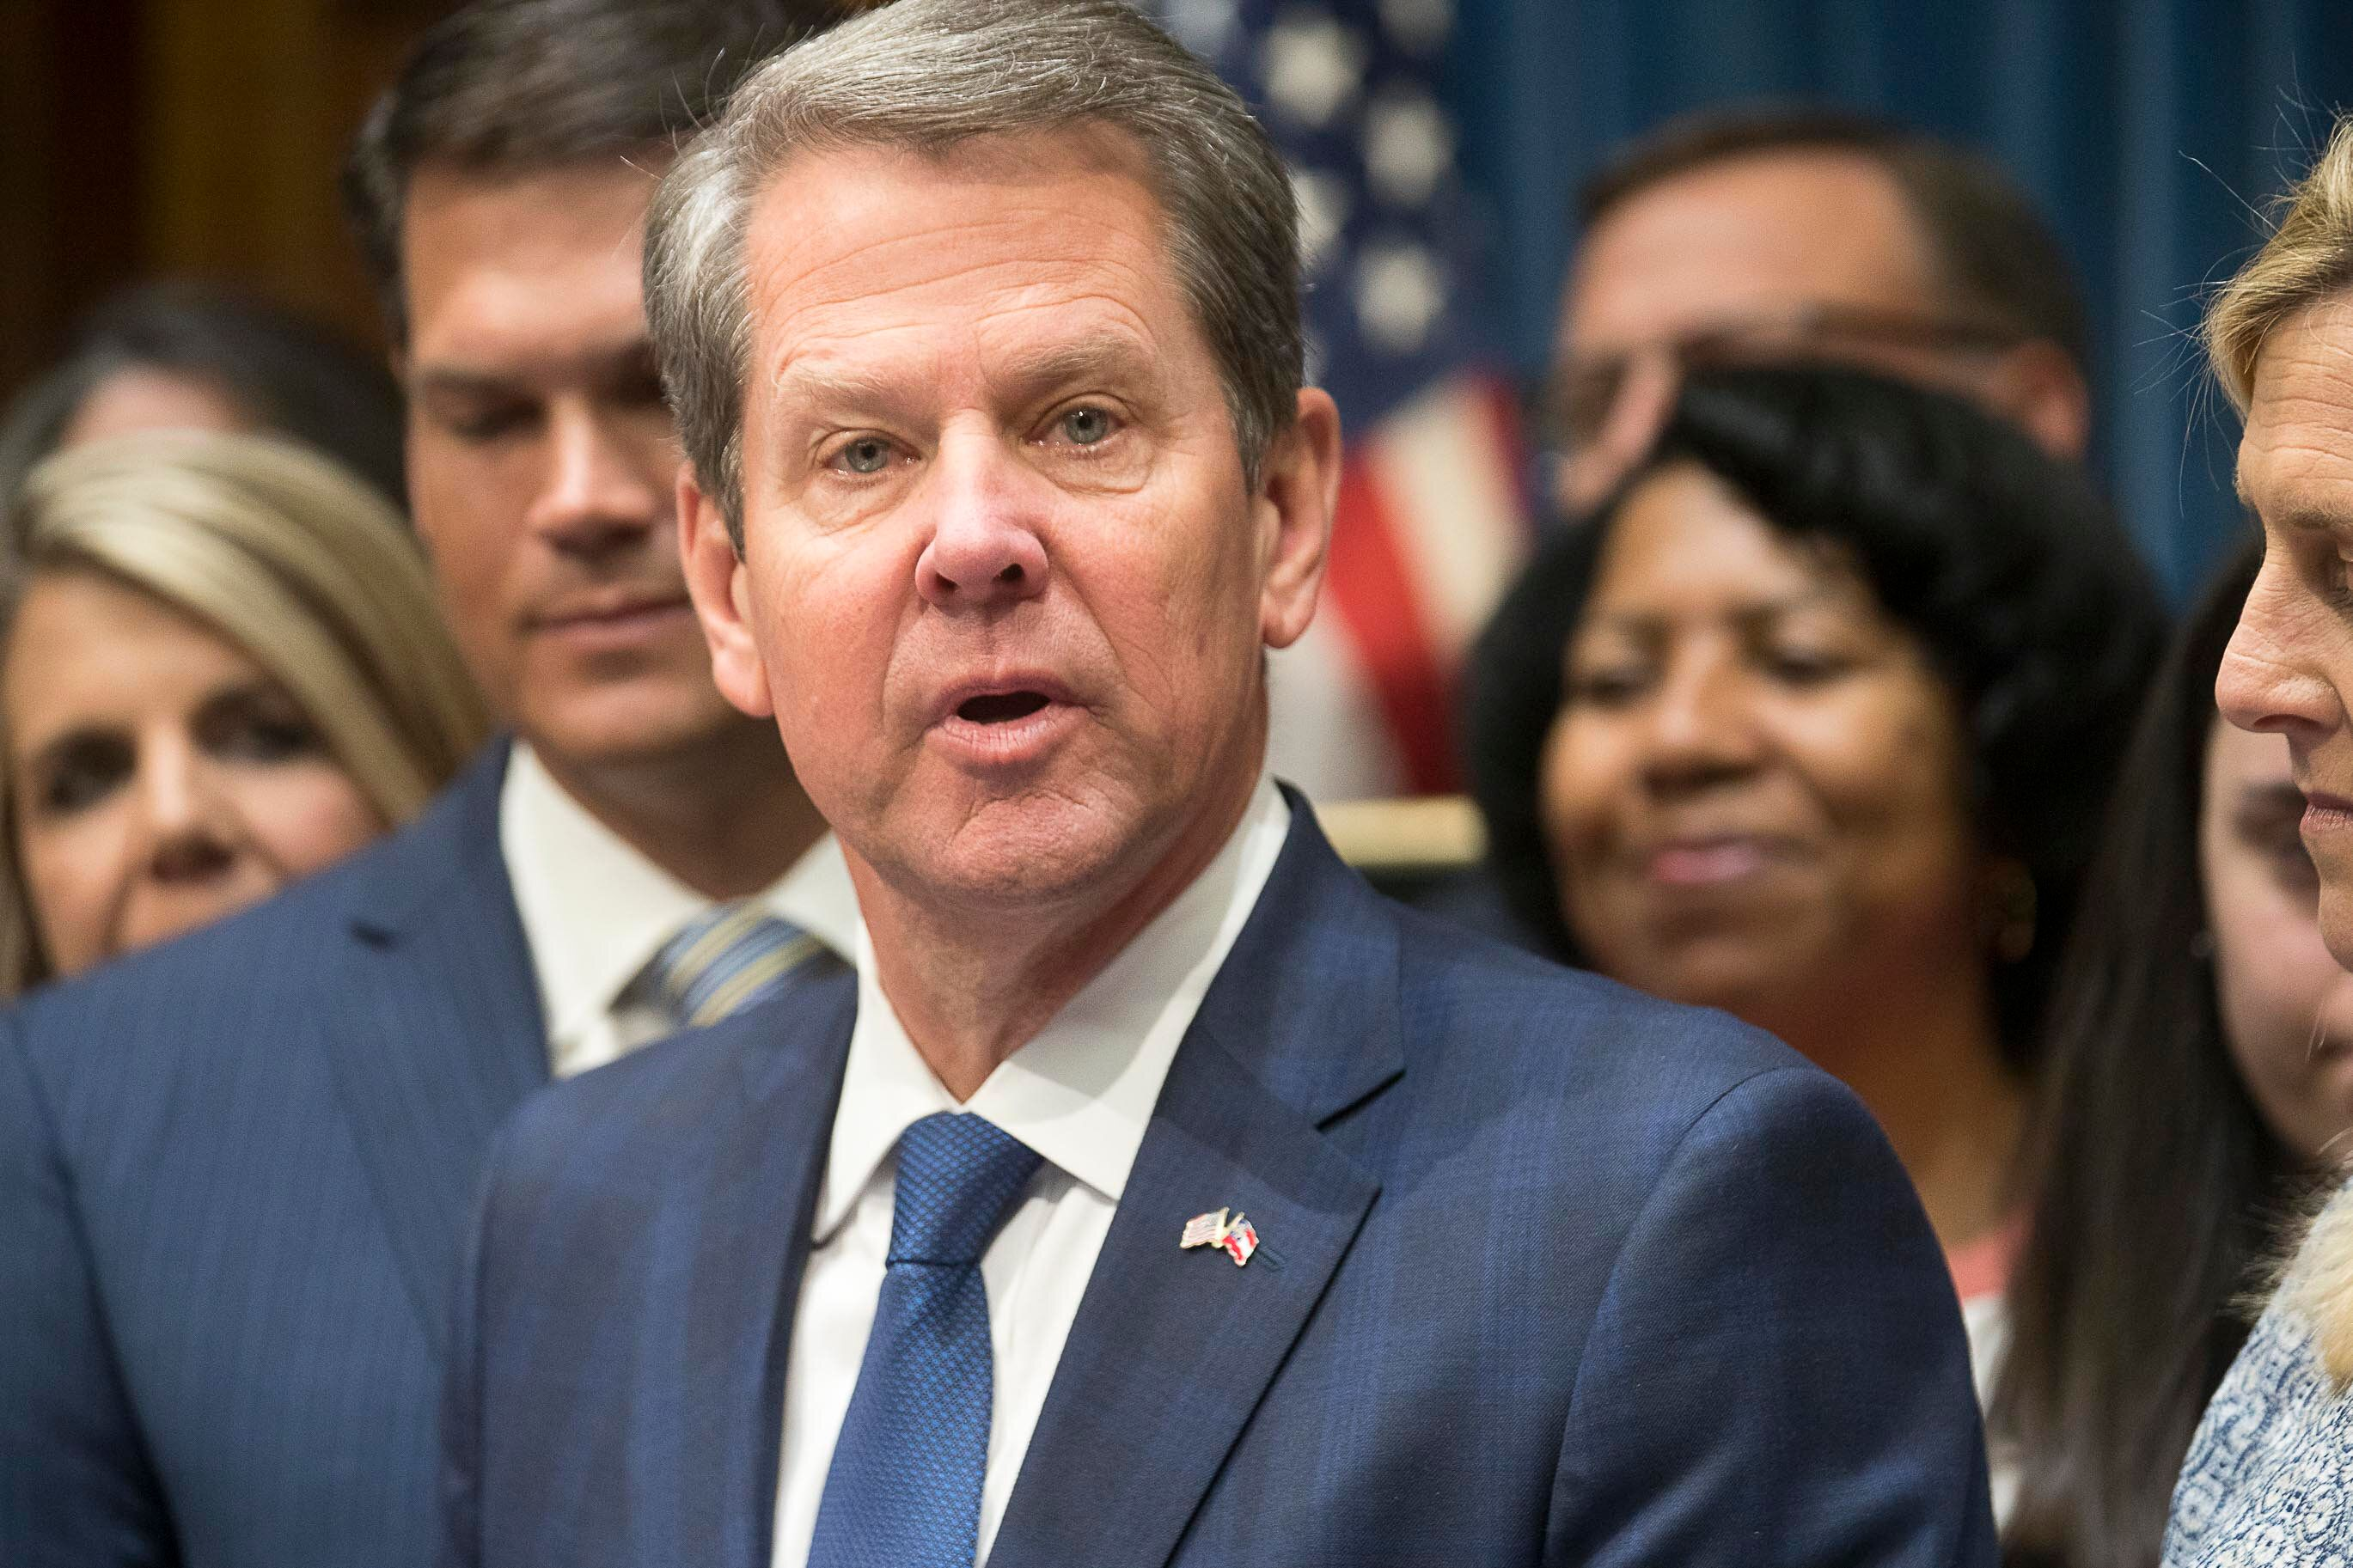 Georgia Governor Brian Kemp speaks during a press conference for the signing of HB 481 at the Georgia State Capitol building in Atlanta, Tuesday, May 7, 2019. Governor Kemp signed legislation on Tuesday banning abortions once a fetal heartbeat can be detected. (Alyssa Pointer/Atlanta Journal-Constitution via AP)